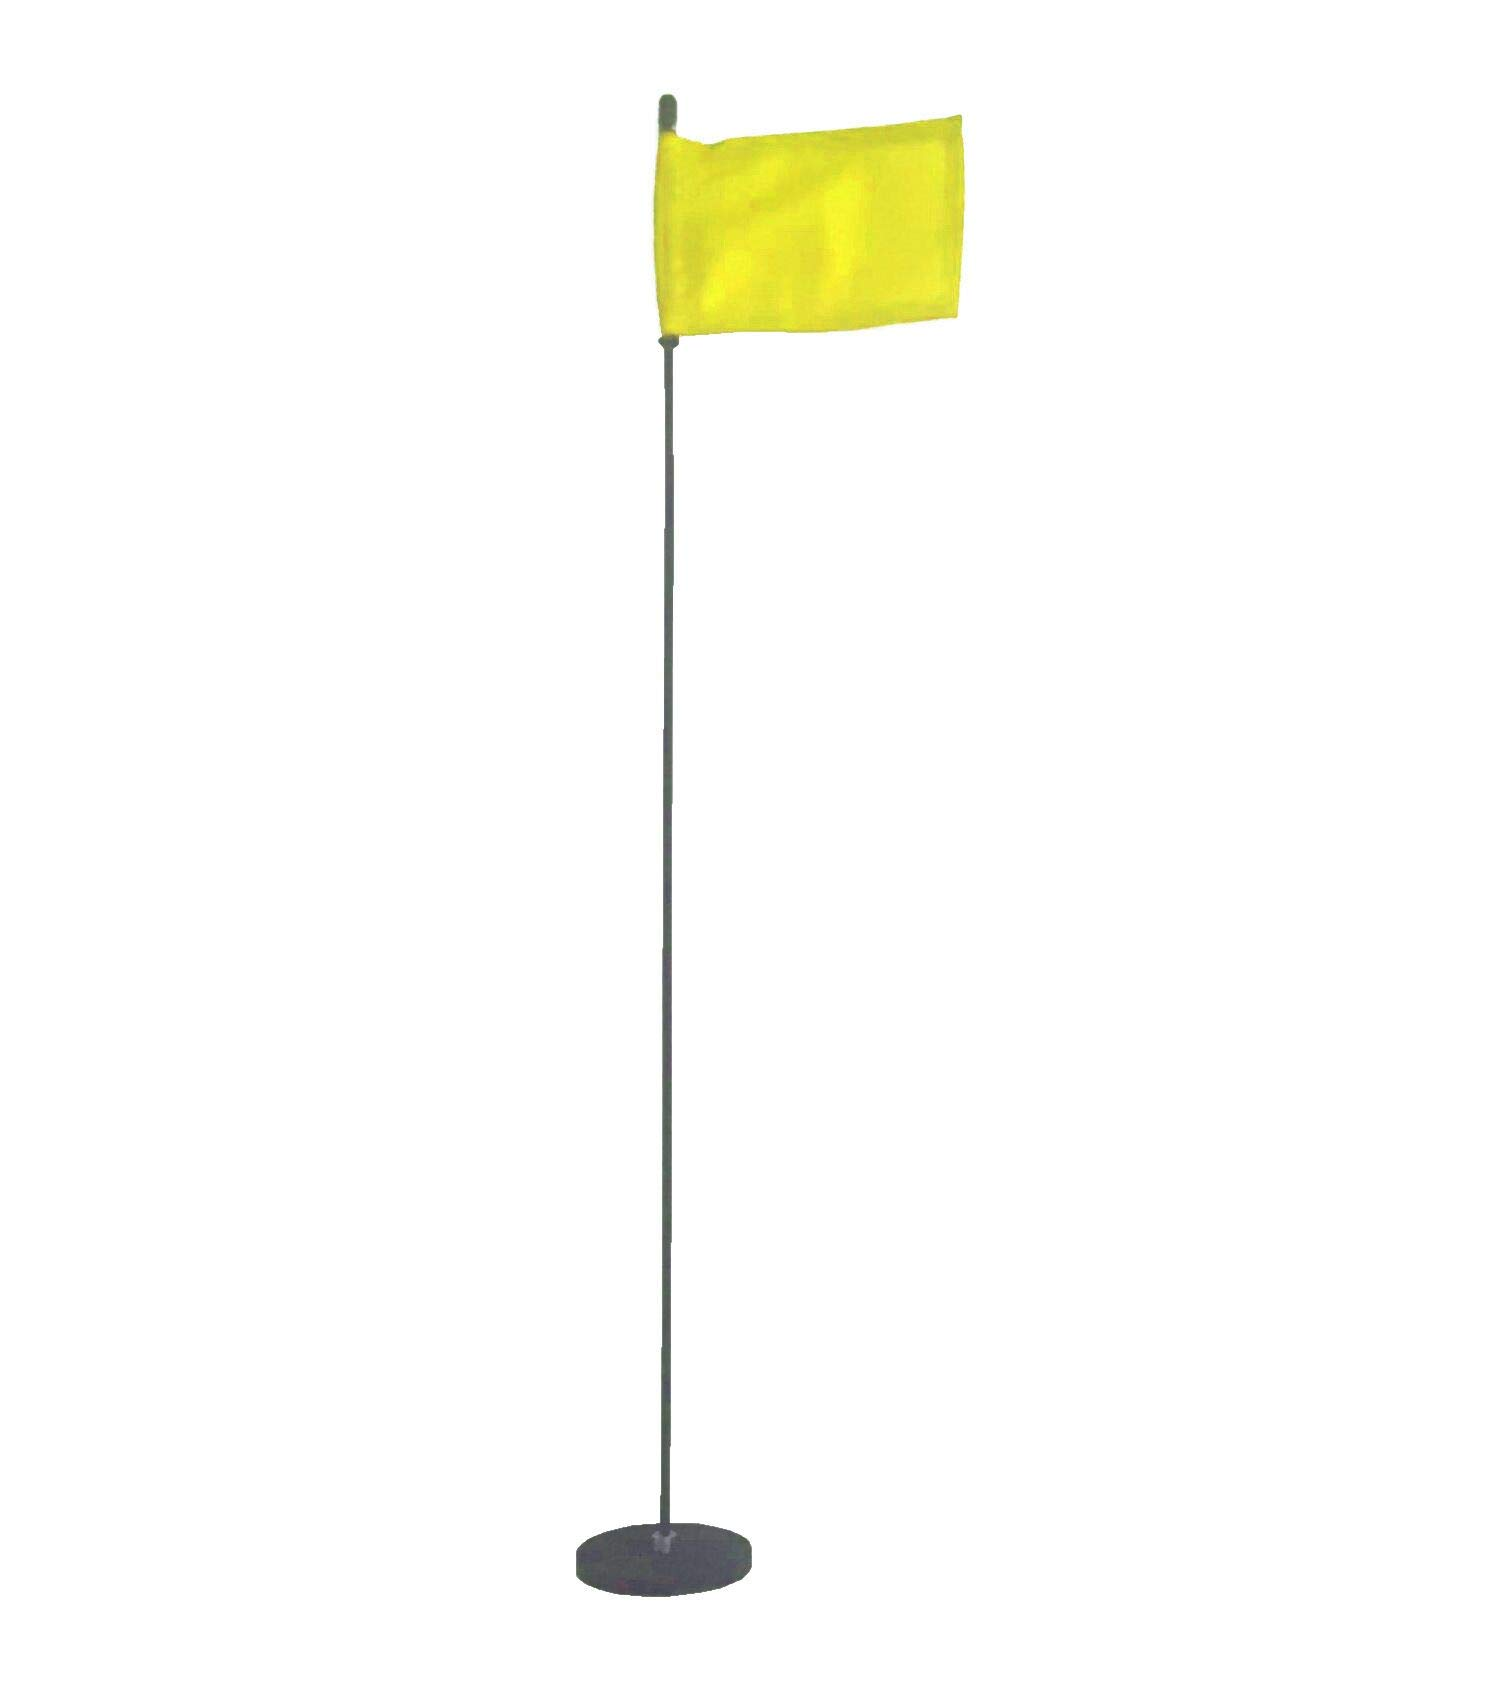 Magnetic Base Flag Holder 3 FT. Steel Pole - Hold Force 44 lbs. - 4 x 6 Yellow Flag